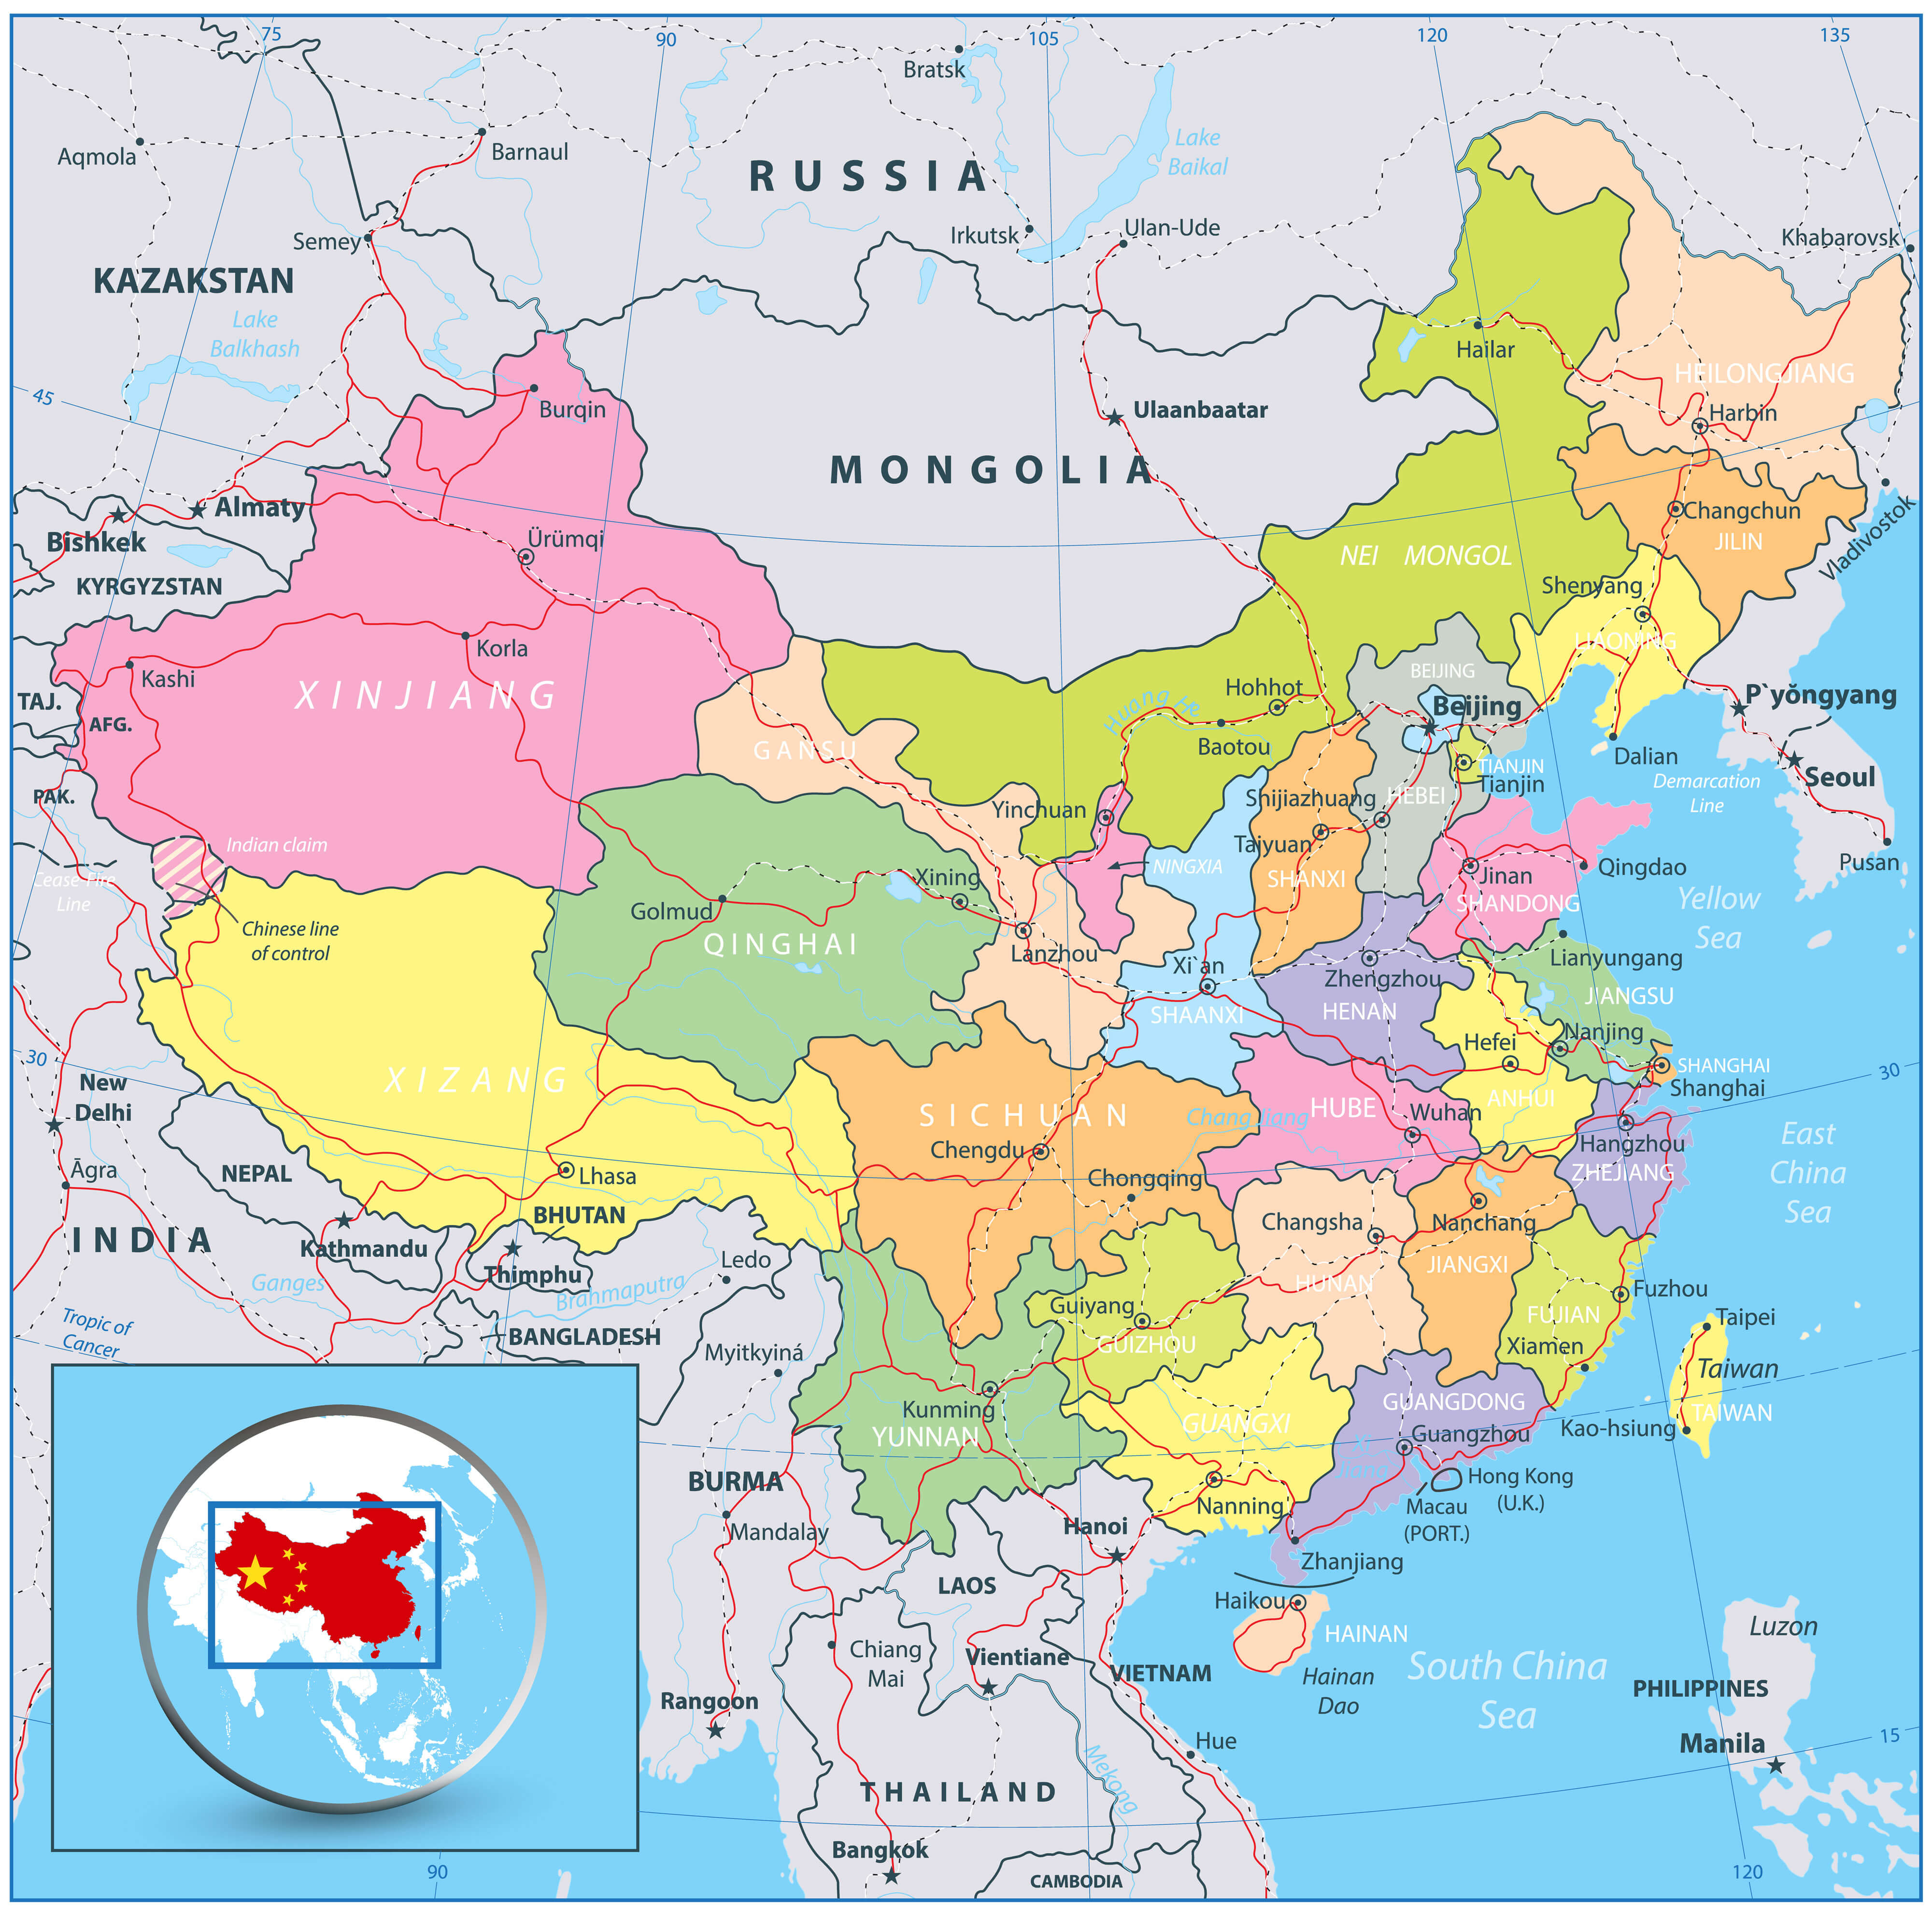 Detailed Political Map of China